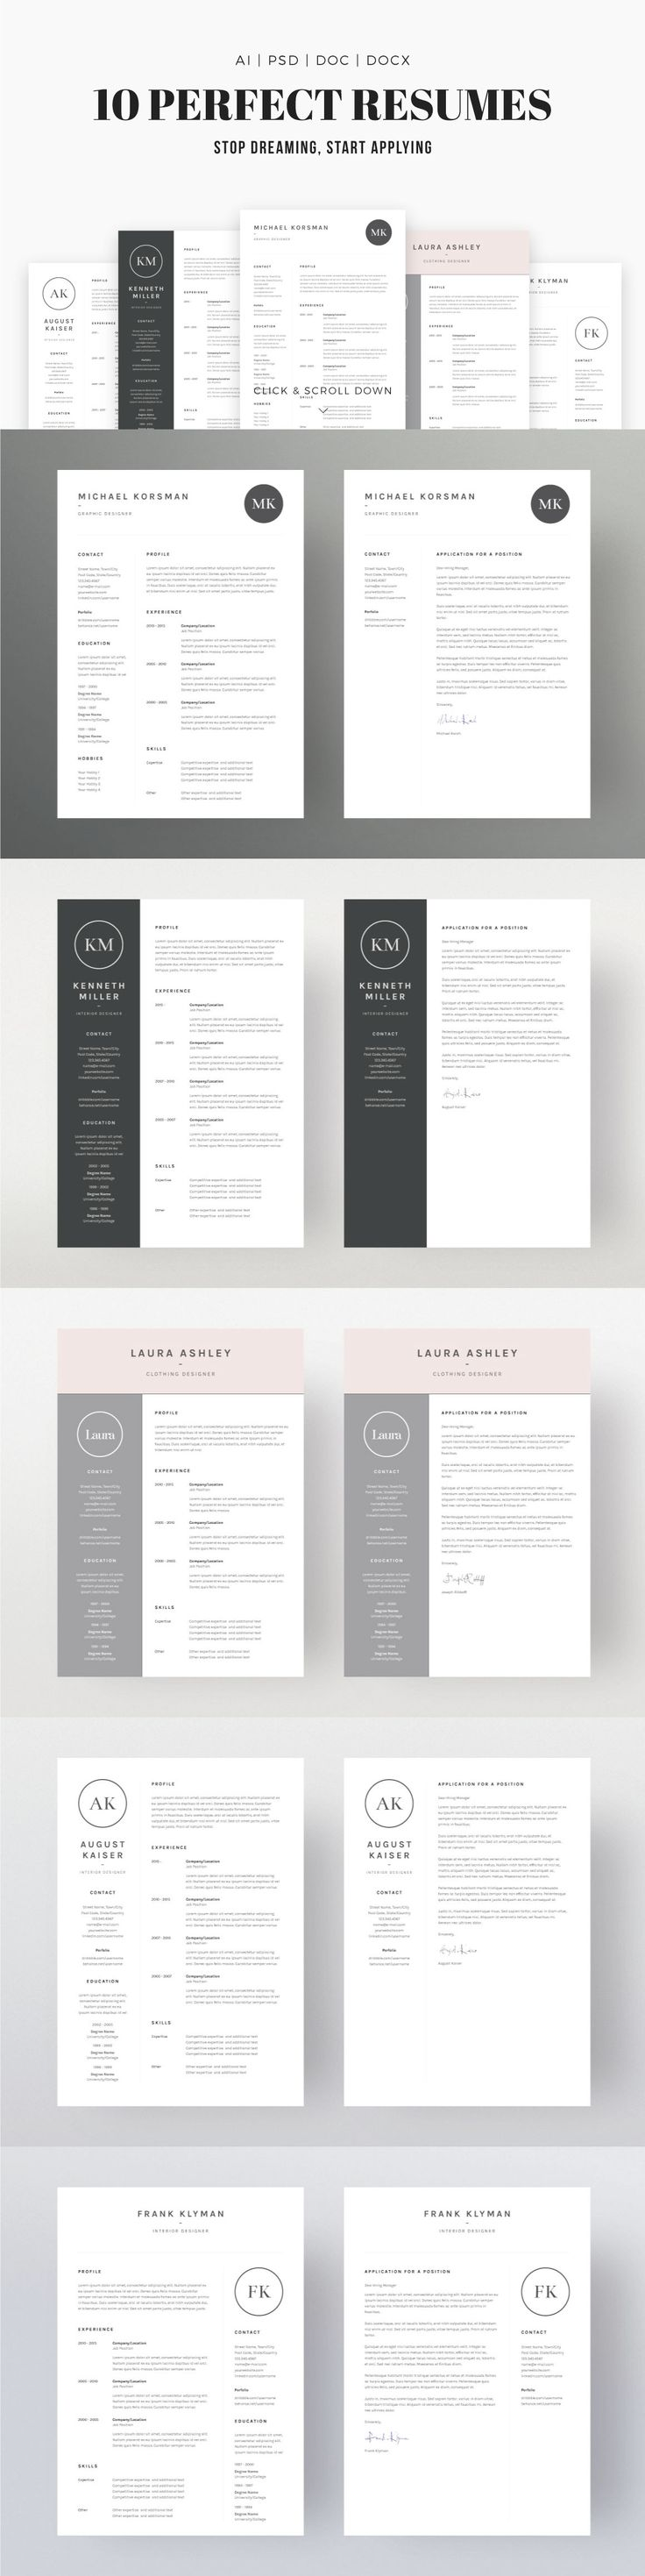 job seekers dream bundle professional downloadable resume template designs - Resume Format For Professional